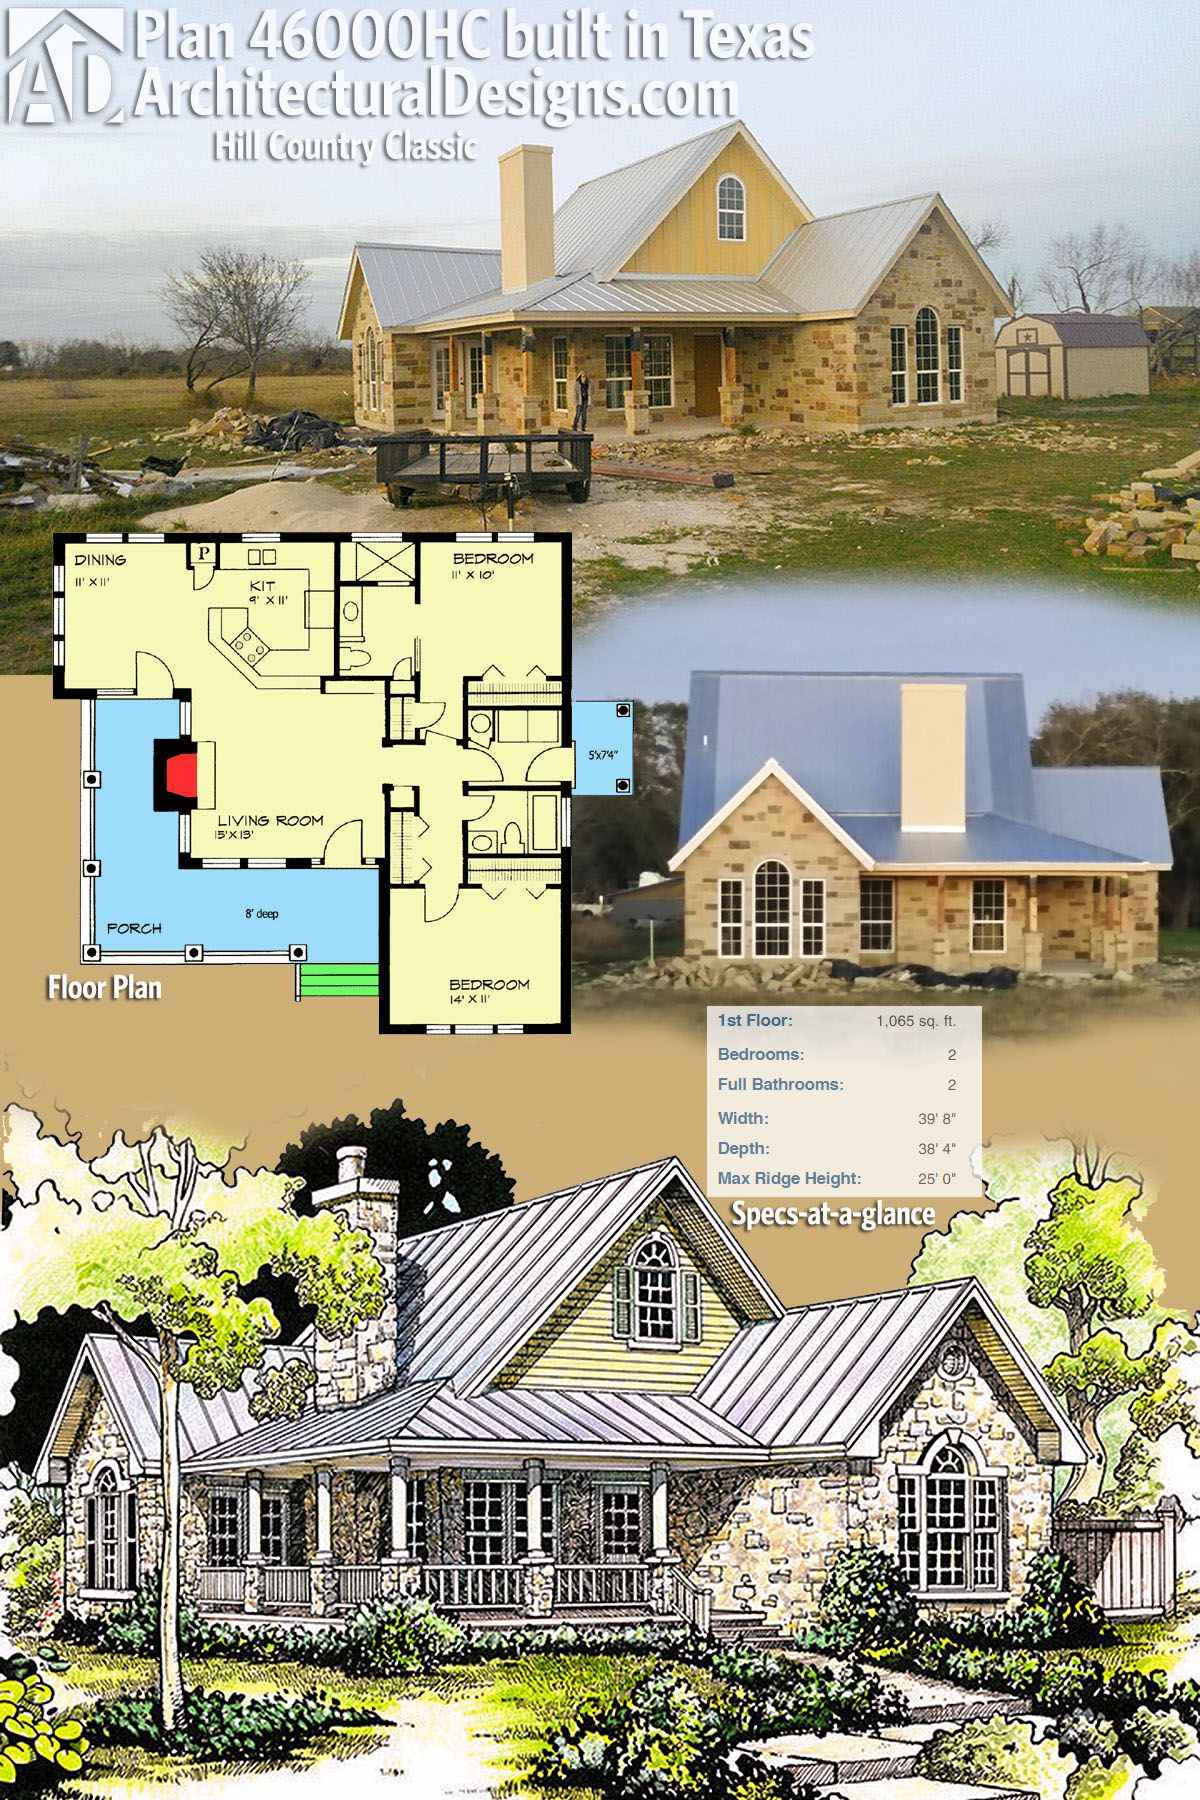 Plan 46000hc hill country classic wraparound porch for Hill country classic homes